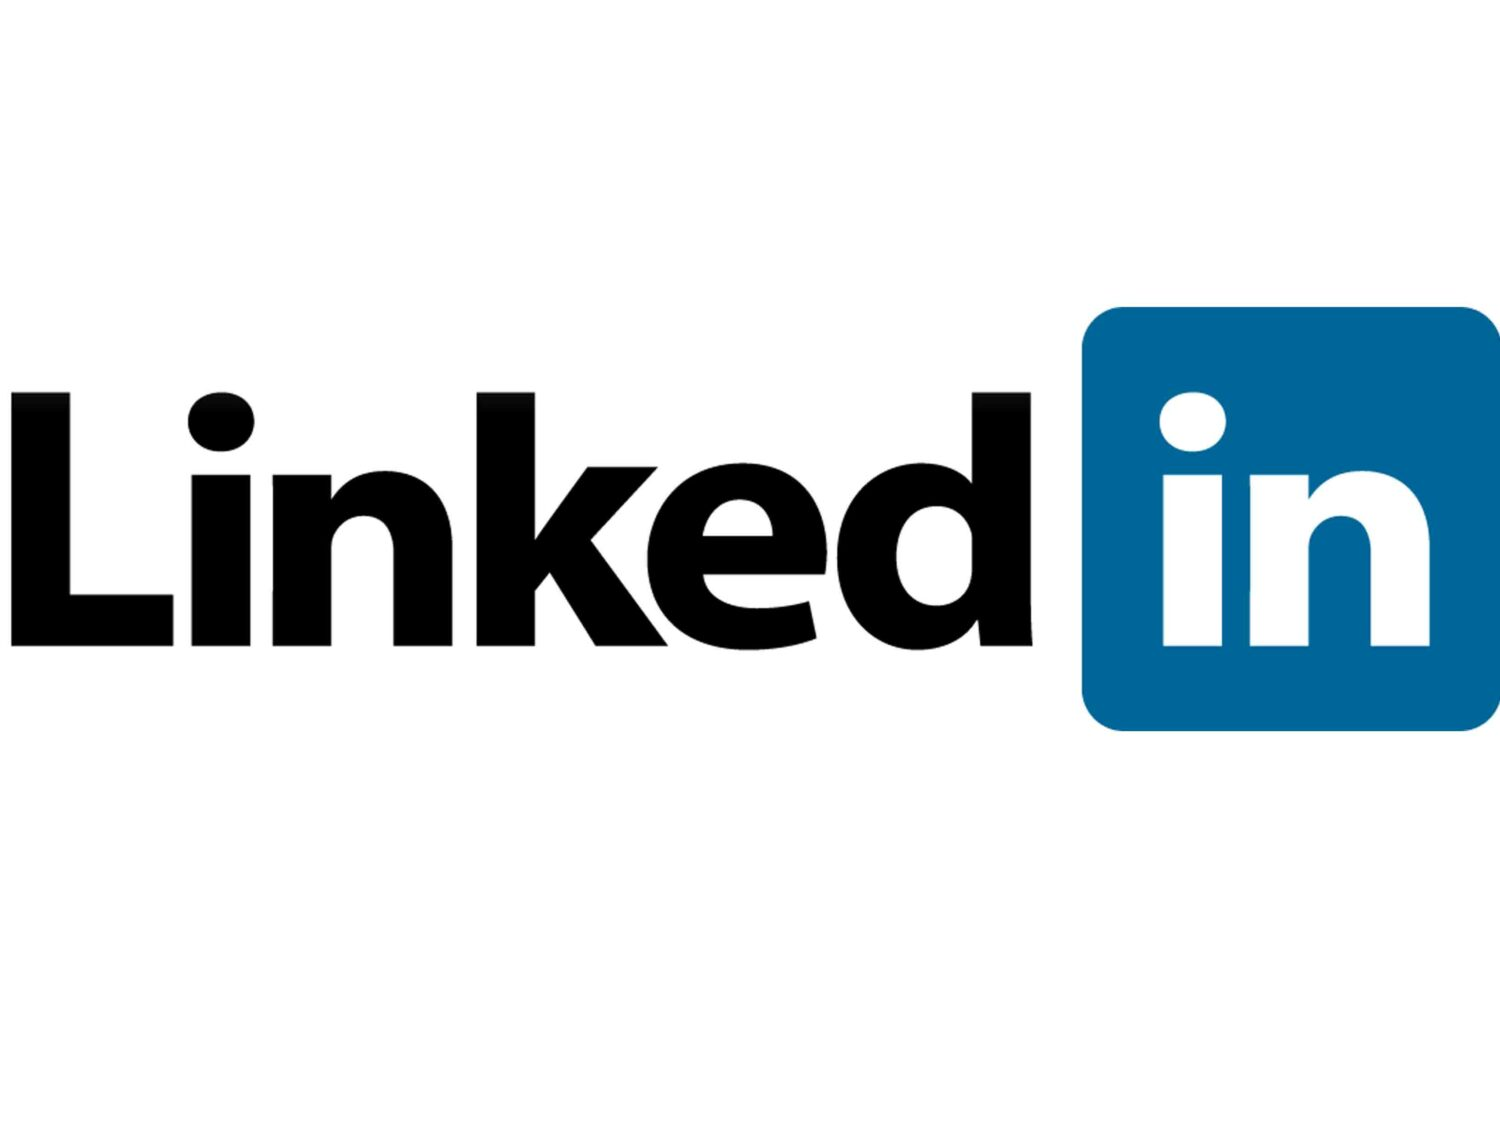 LinkedIn Launches Support to Accelerate COVID-19 Vaccine Distribution